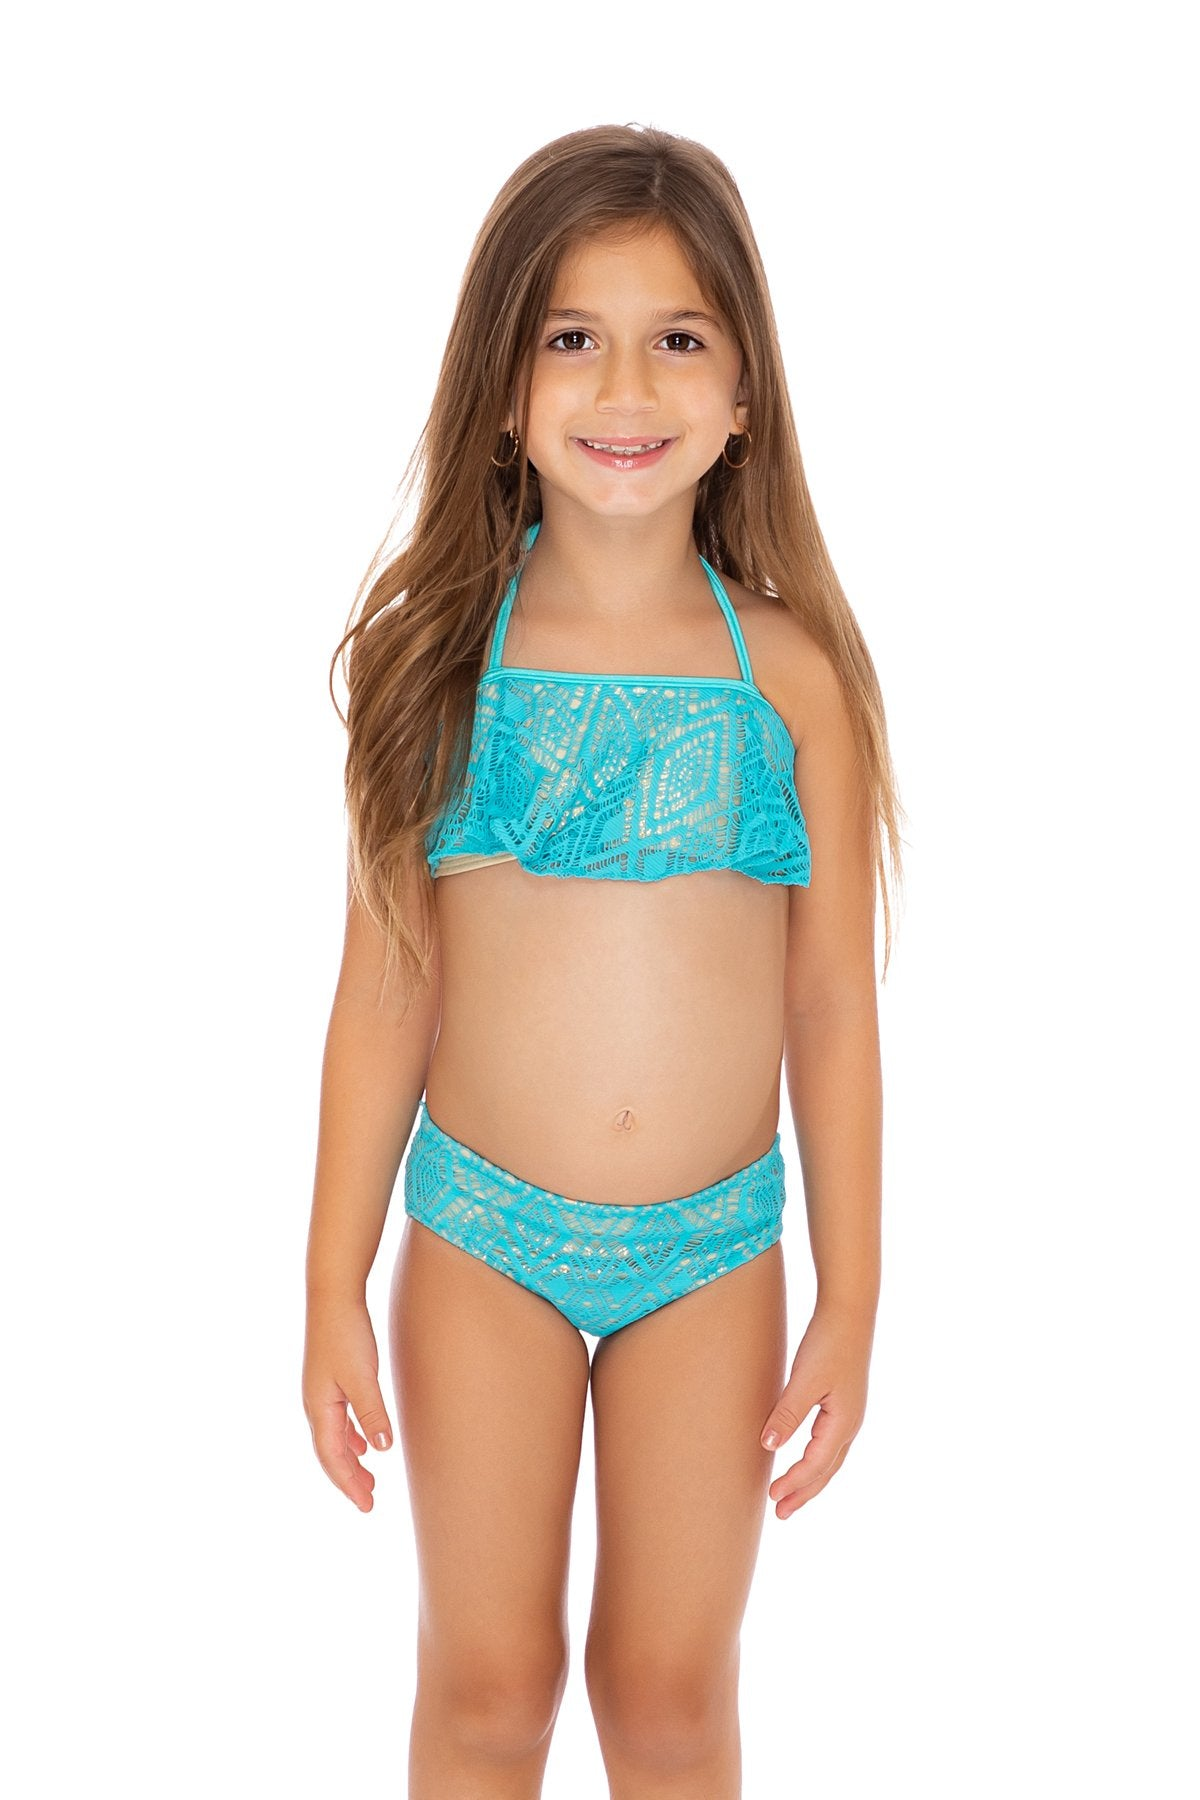 MIAMI NIGHTS - Cascade Halter Top Ruched Back Bikini • Aruba Blue